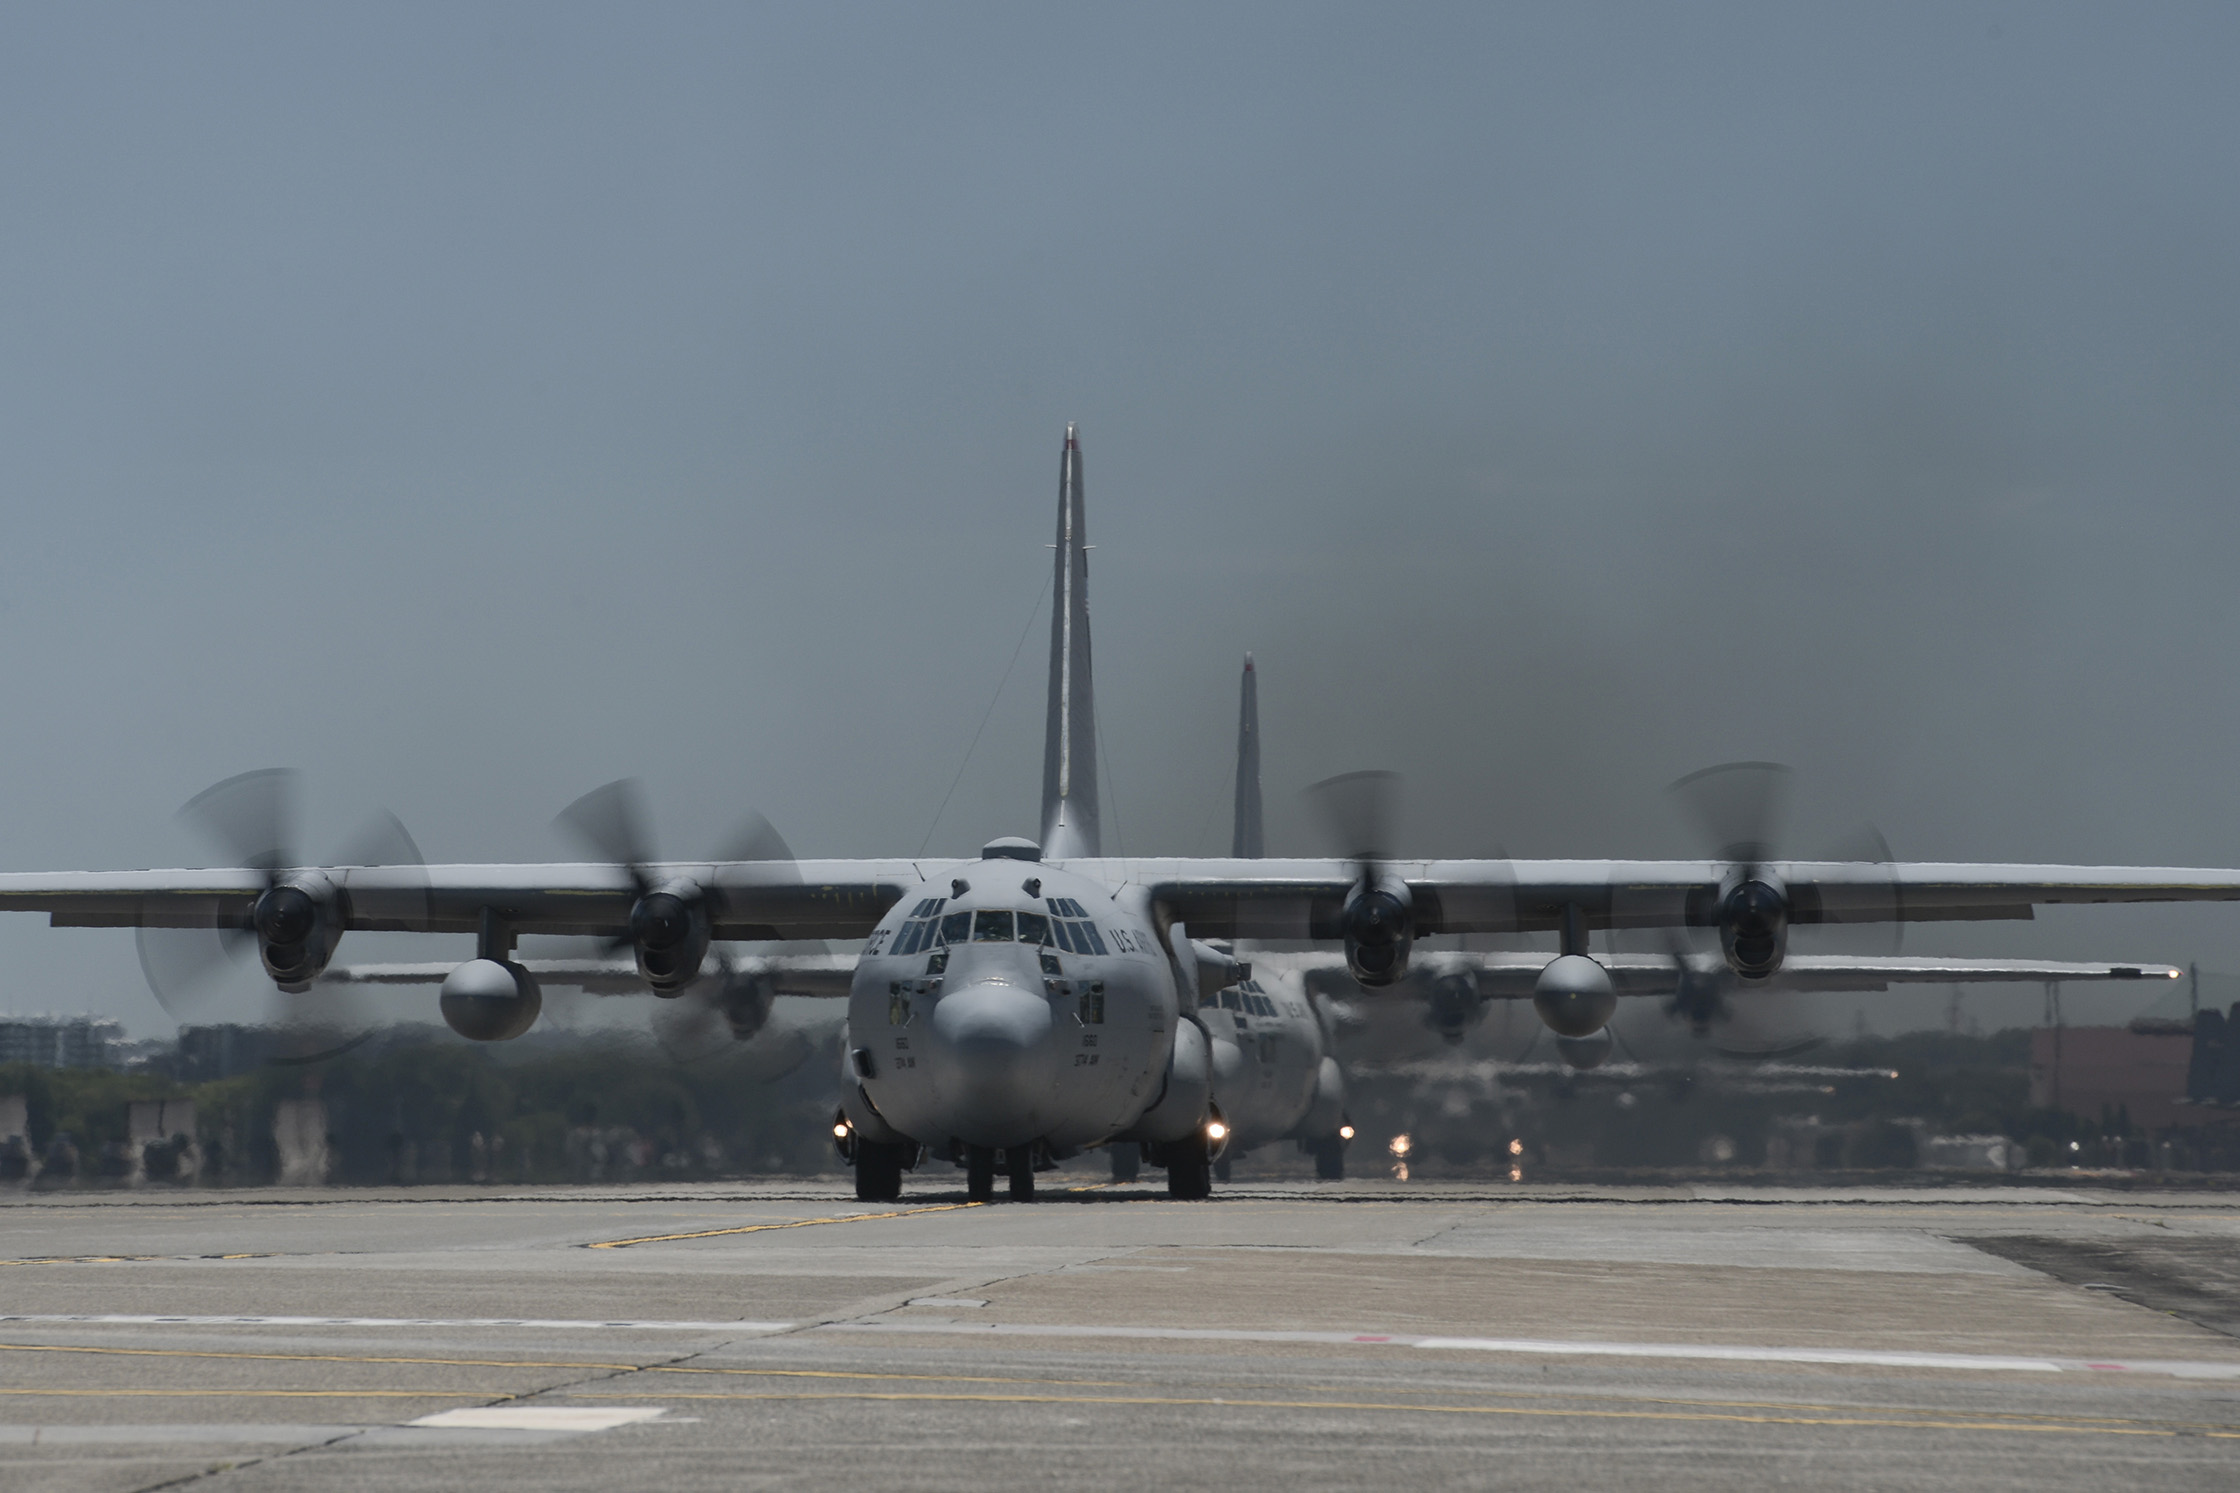 Multiple C-130 Hercules taxi during large formation training at Yokota Air Base, Japan, July 14, 2015. Nine C-130s took off during the training, practicing their large formation and airlift capabilities. (U.S. Air Force photo by Staff Sgt. Cody H. Ramirez/ Released)